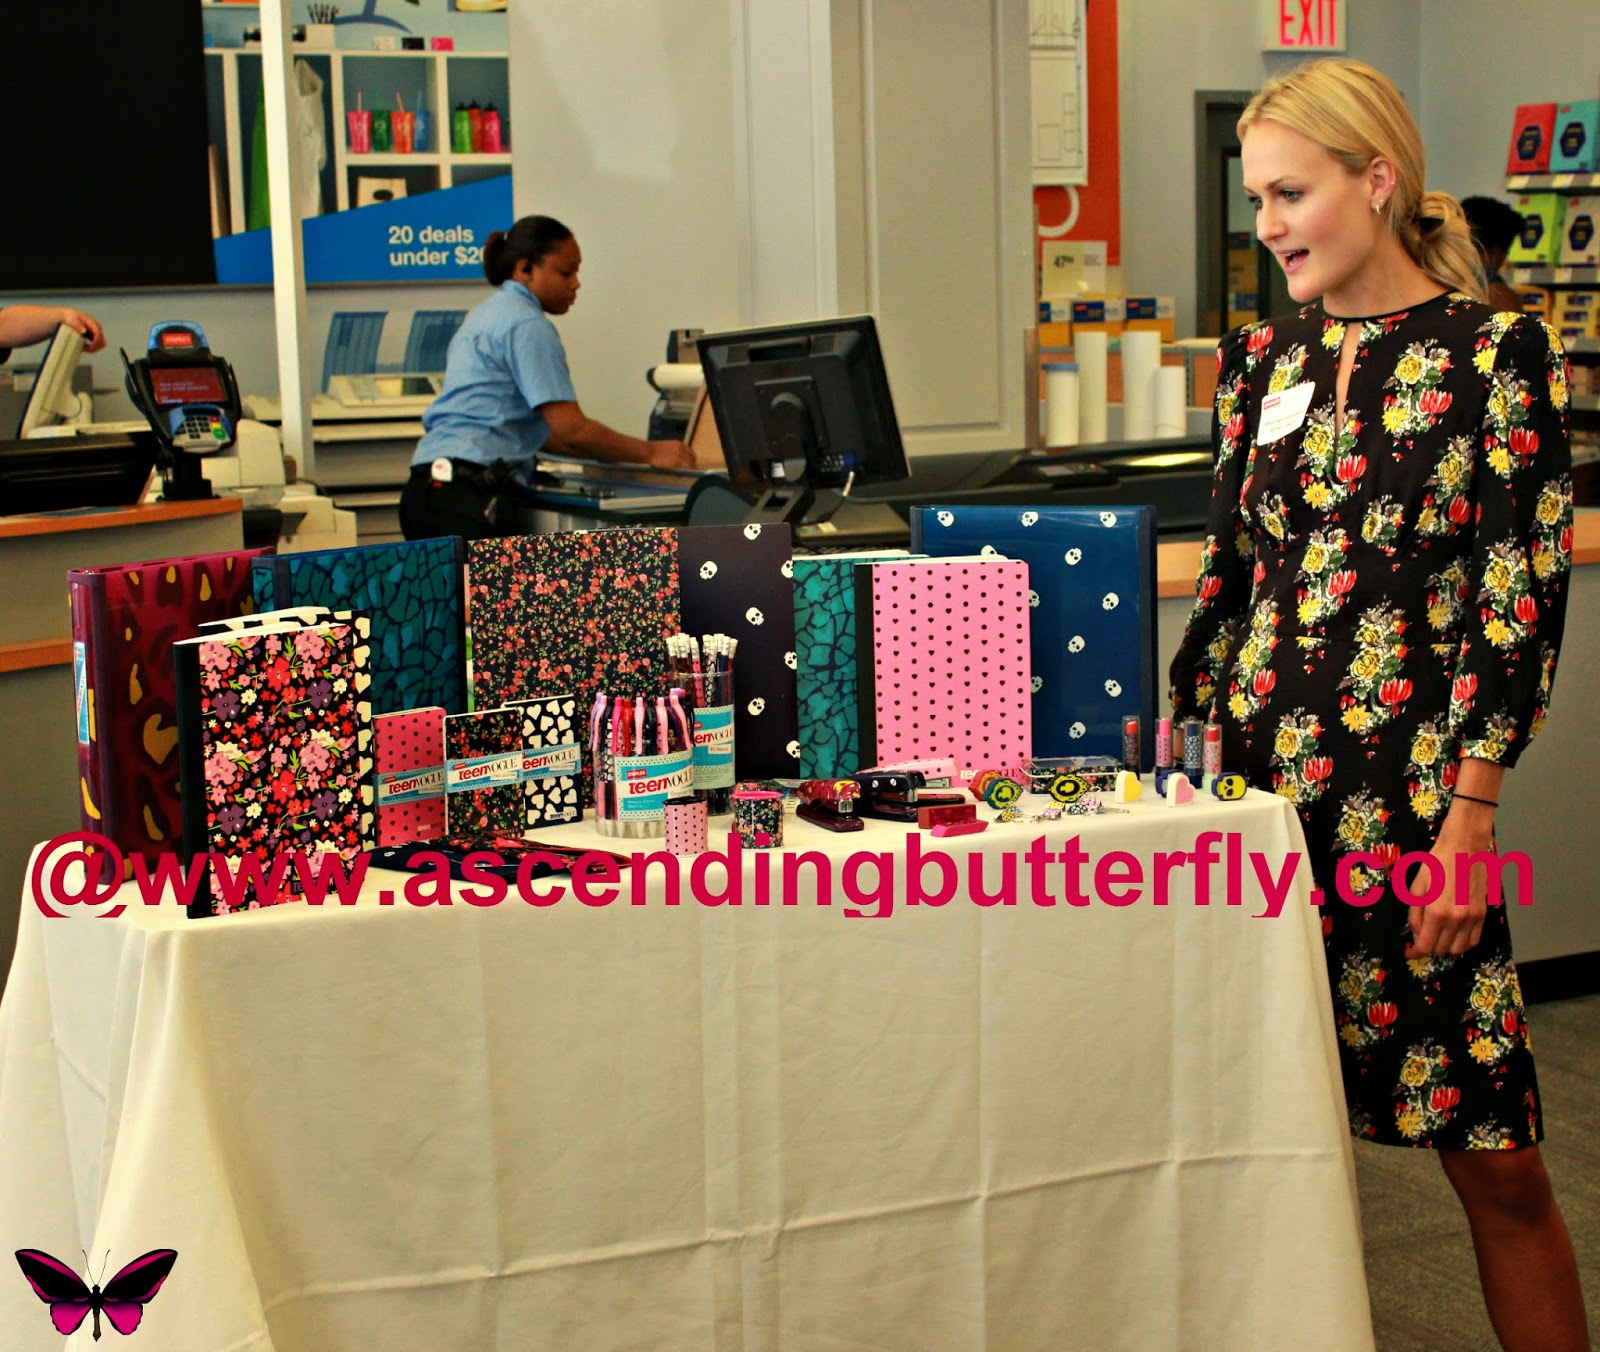 Amy Astley, Editor-in-Chief of Teen Vogue Magazine introduced us to the Teen Vogue Collection for Staples